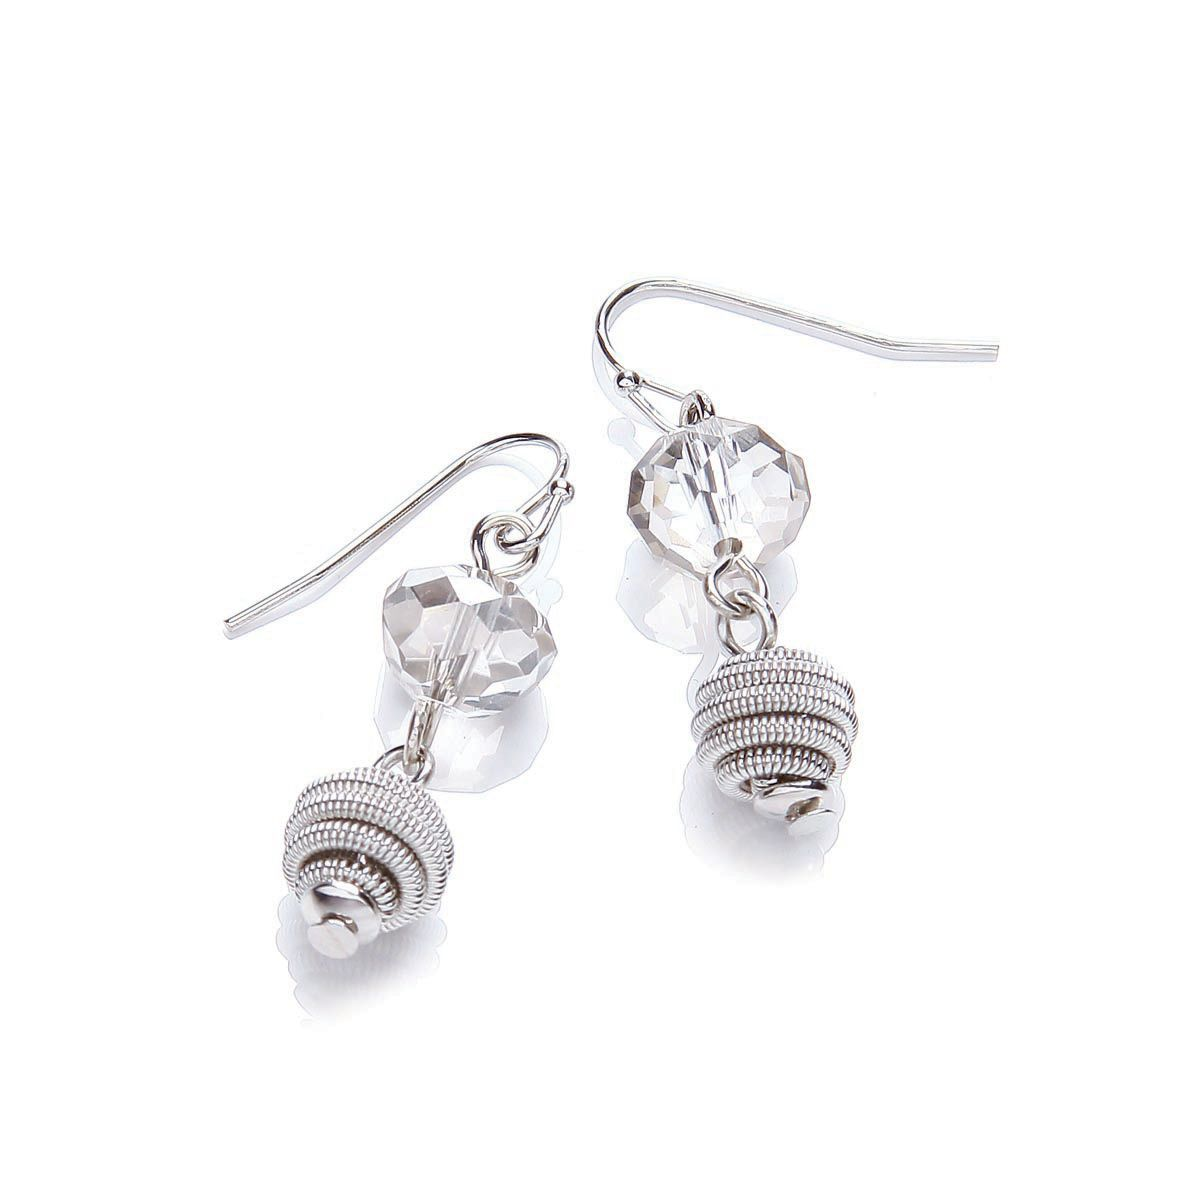 Imi Rhodium glass short drop earrings